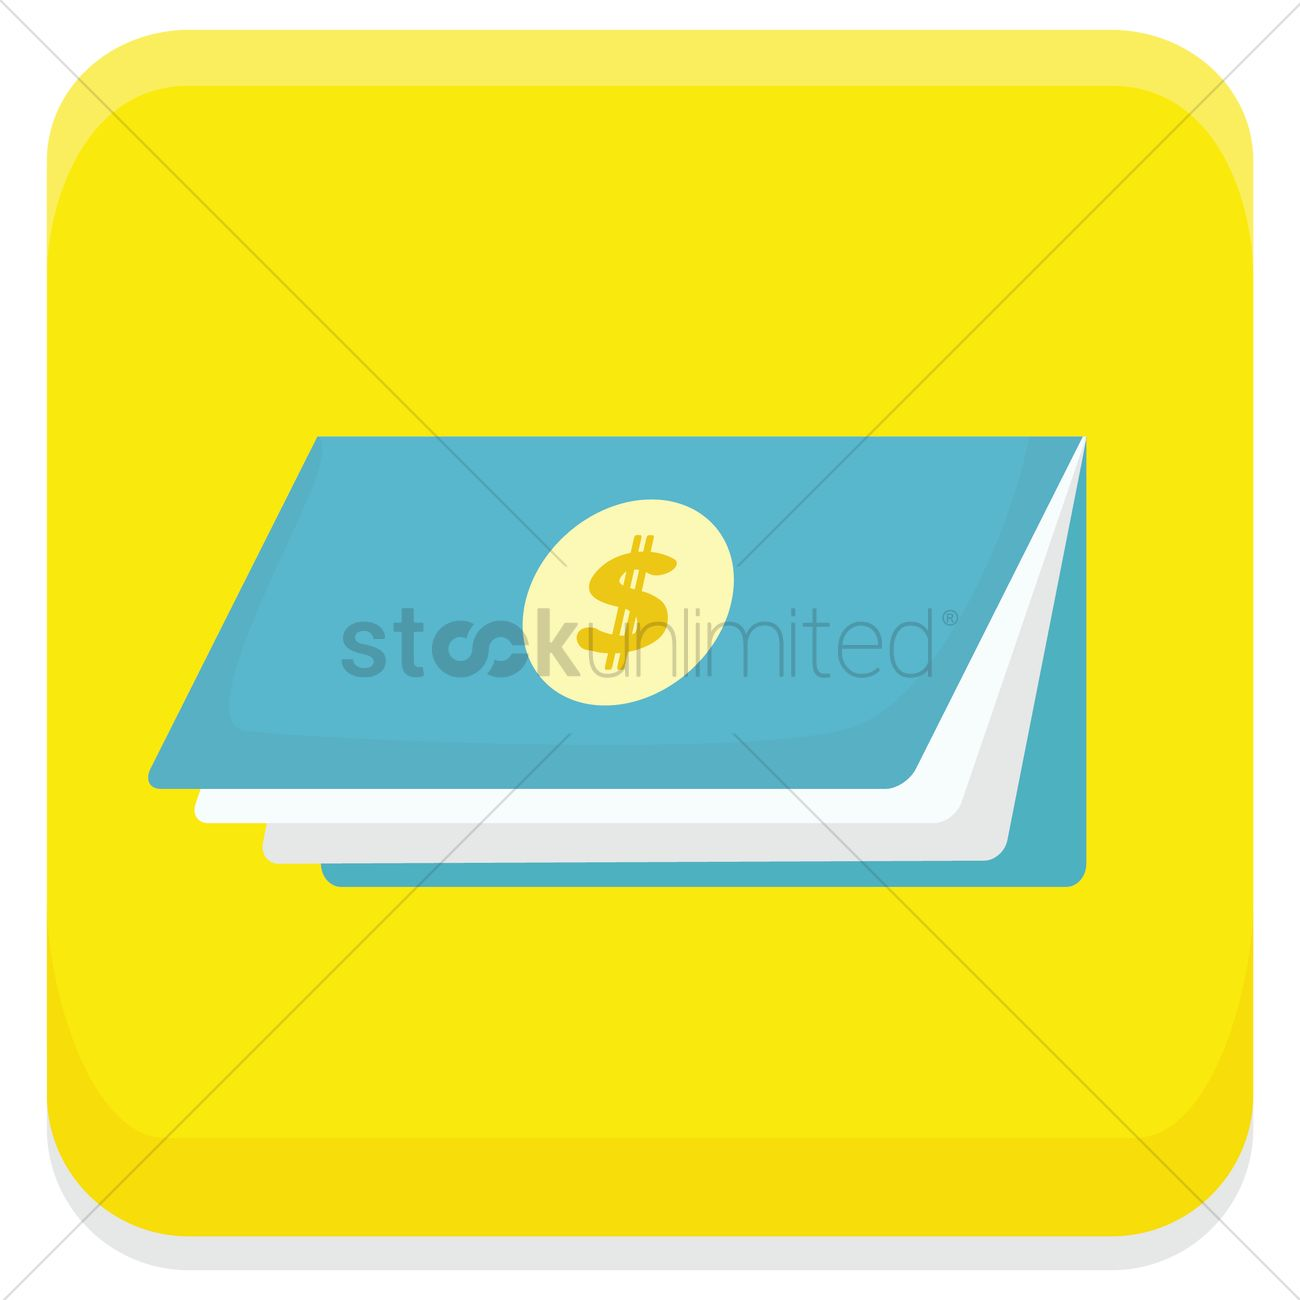 Free Pass book Vector Image - 1289011 | StockUnlimited